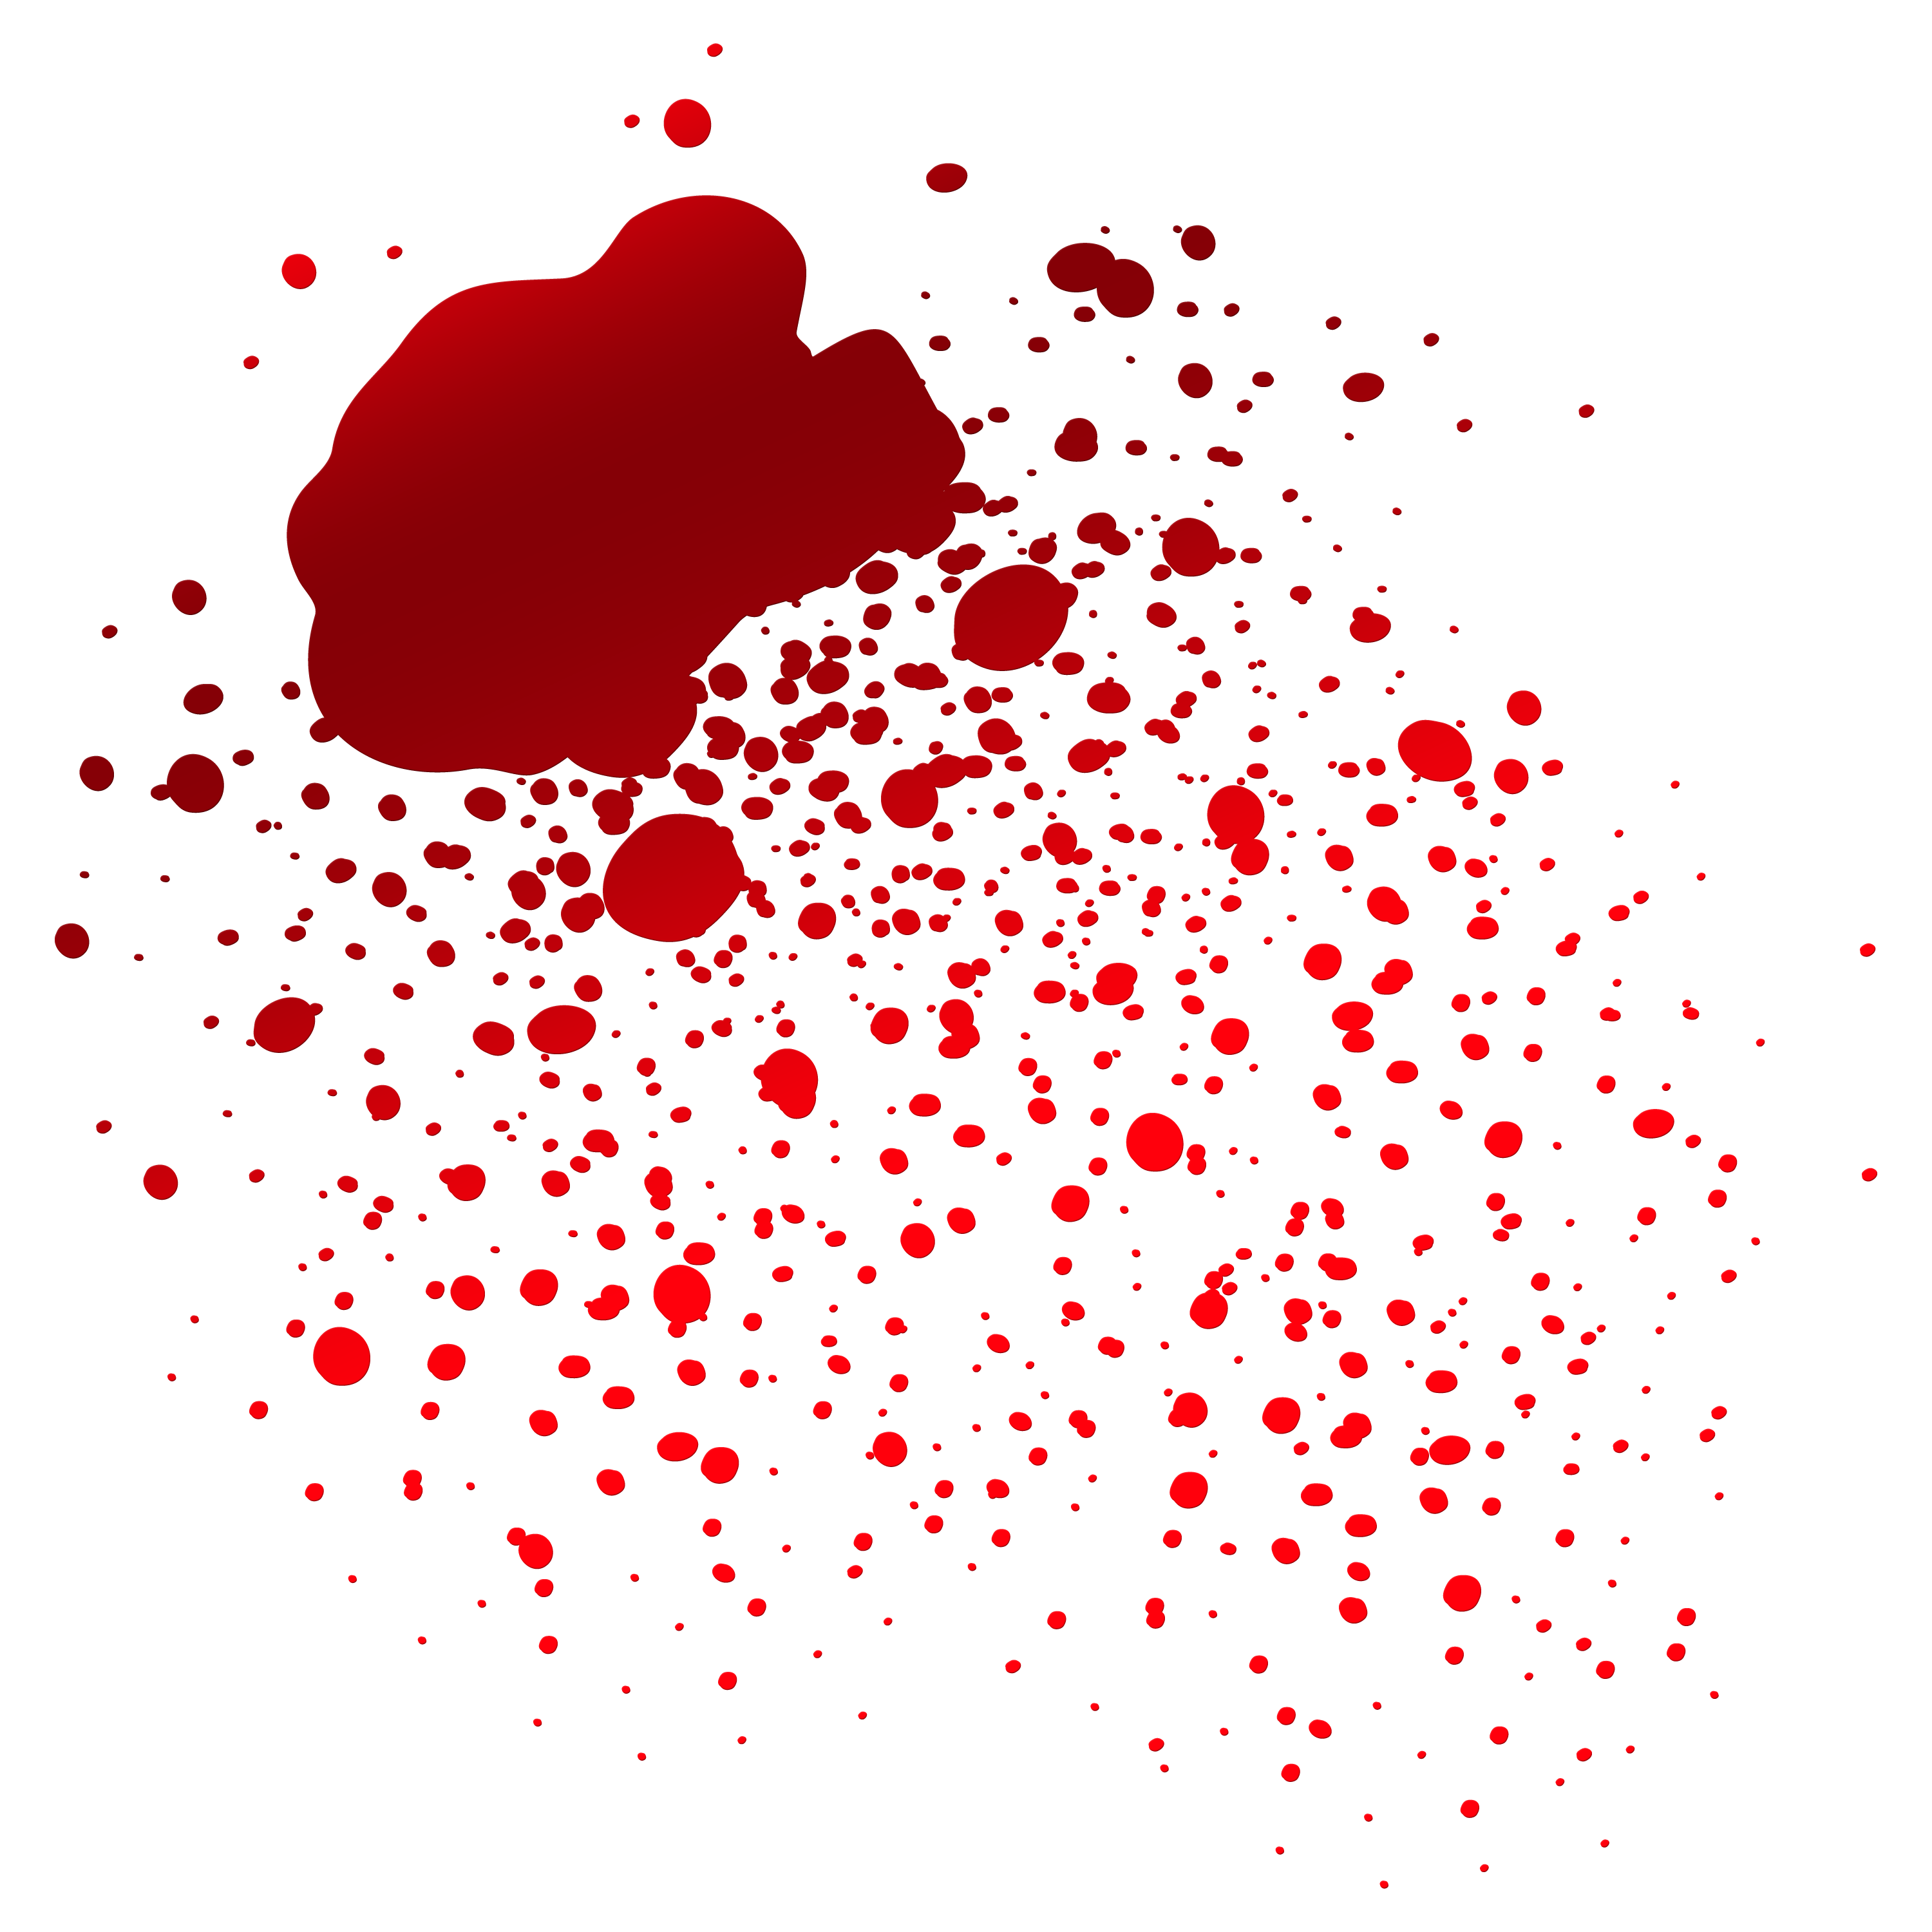 Realistic dripping blood png. Download free transparent image